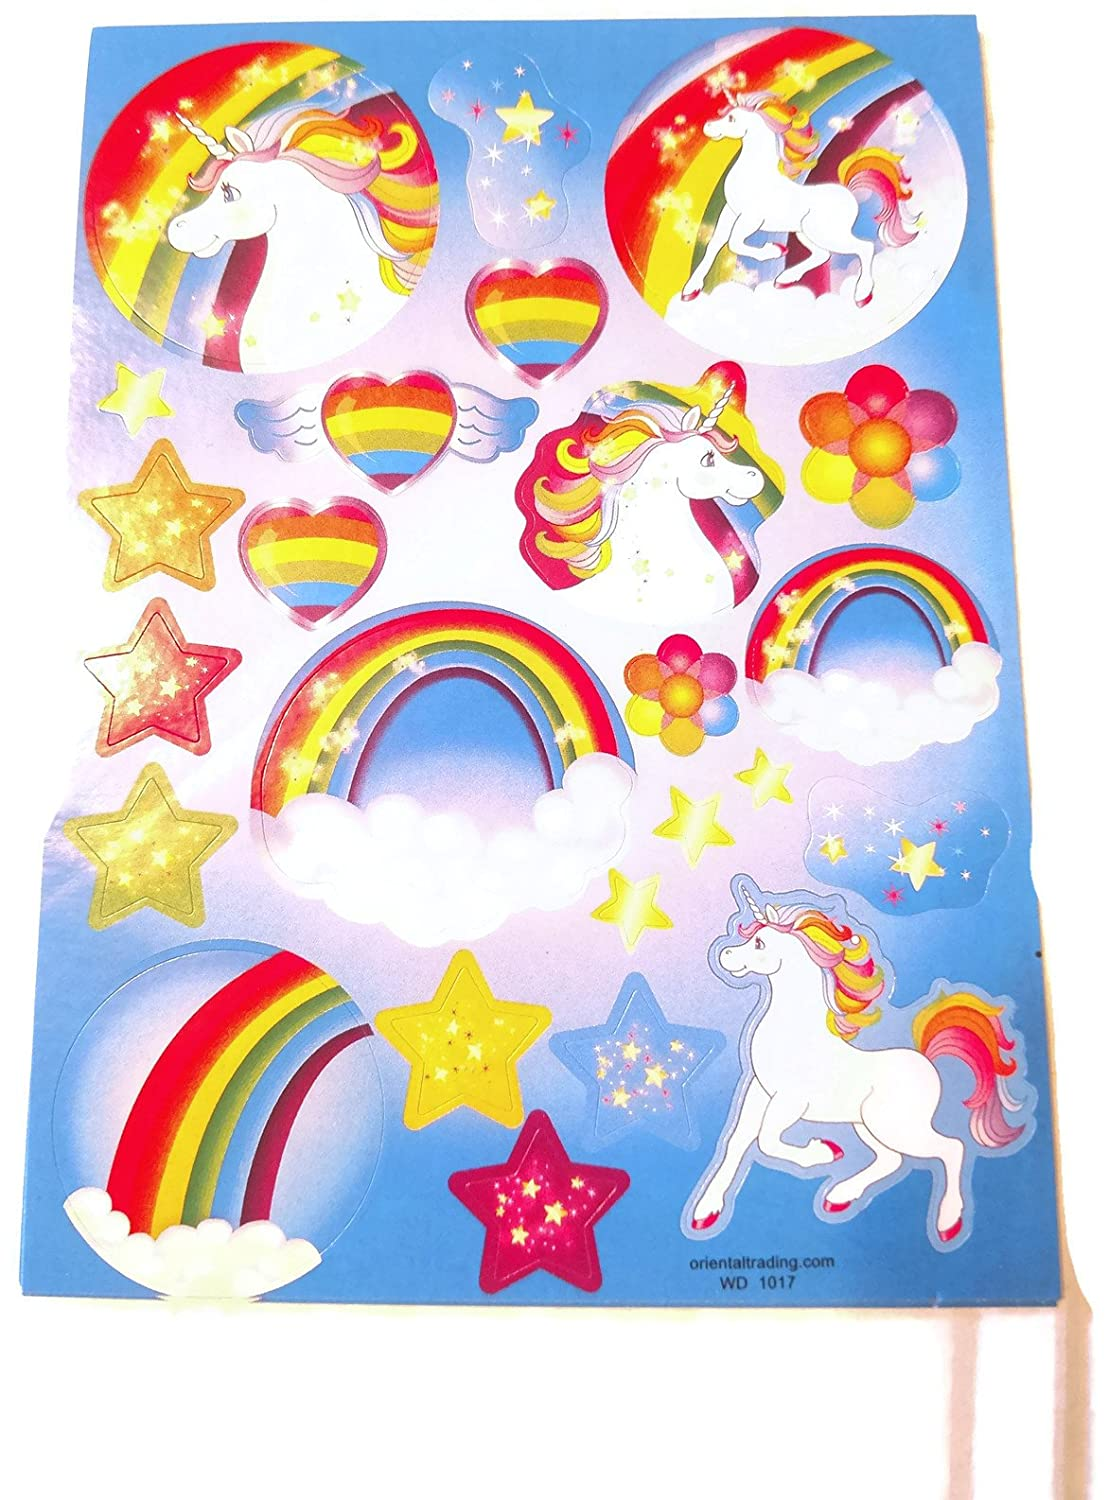 6-Unicorn Notepads 6-Unicorn Sticker Sheets Unicorn Poop Birthday Party Favors For Kids Gift Pack Unicorn Party Supplies 24 Count Bundle Includes : 6 Unicorn Poop 6-Unicorn Pencils